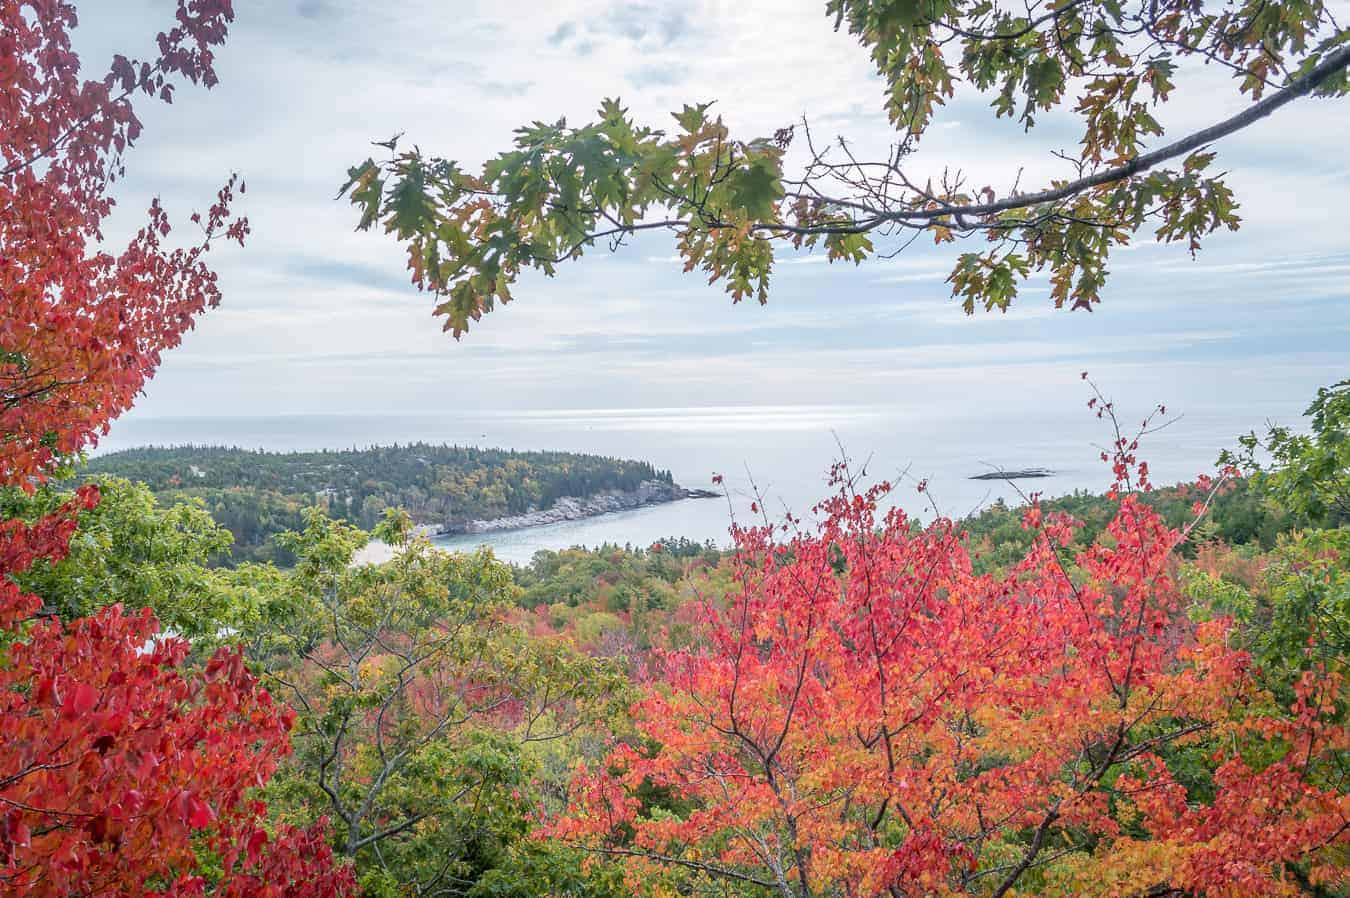 best time to visit acadia national park - inage of the atlantic ocean from atop a high hill. fall leaves frame the view